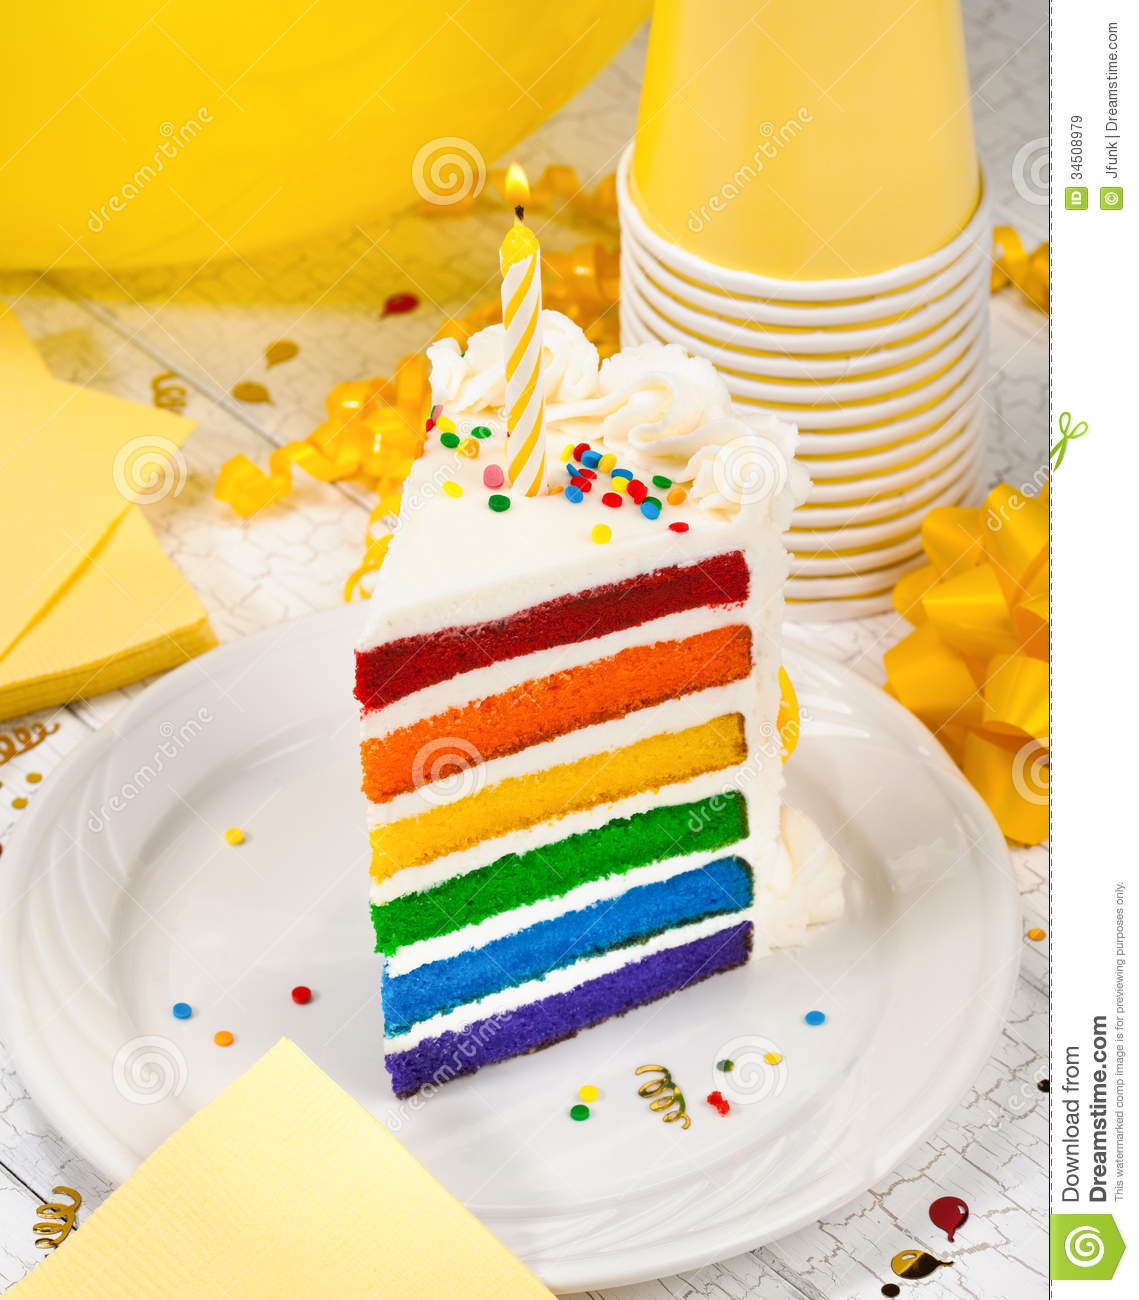 a piece of birthday cake ; slice-birthday-cake-colourful-lit-candle-yellow-party-decorations-background-34508979